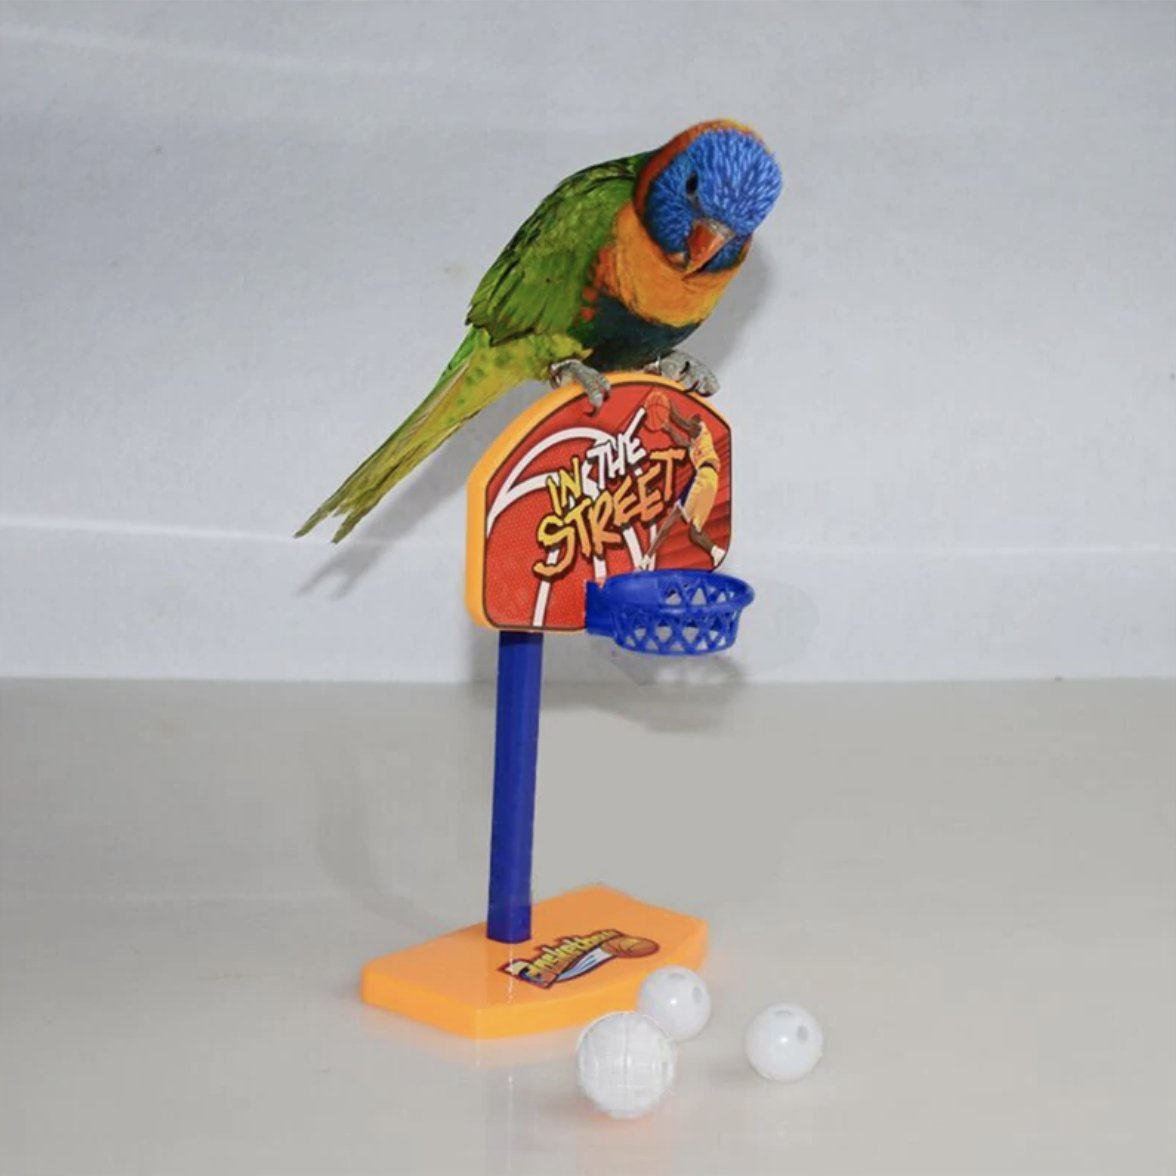 Parrot Training Basket Ball Toy - Wild Pet Supply